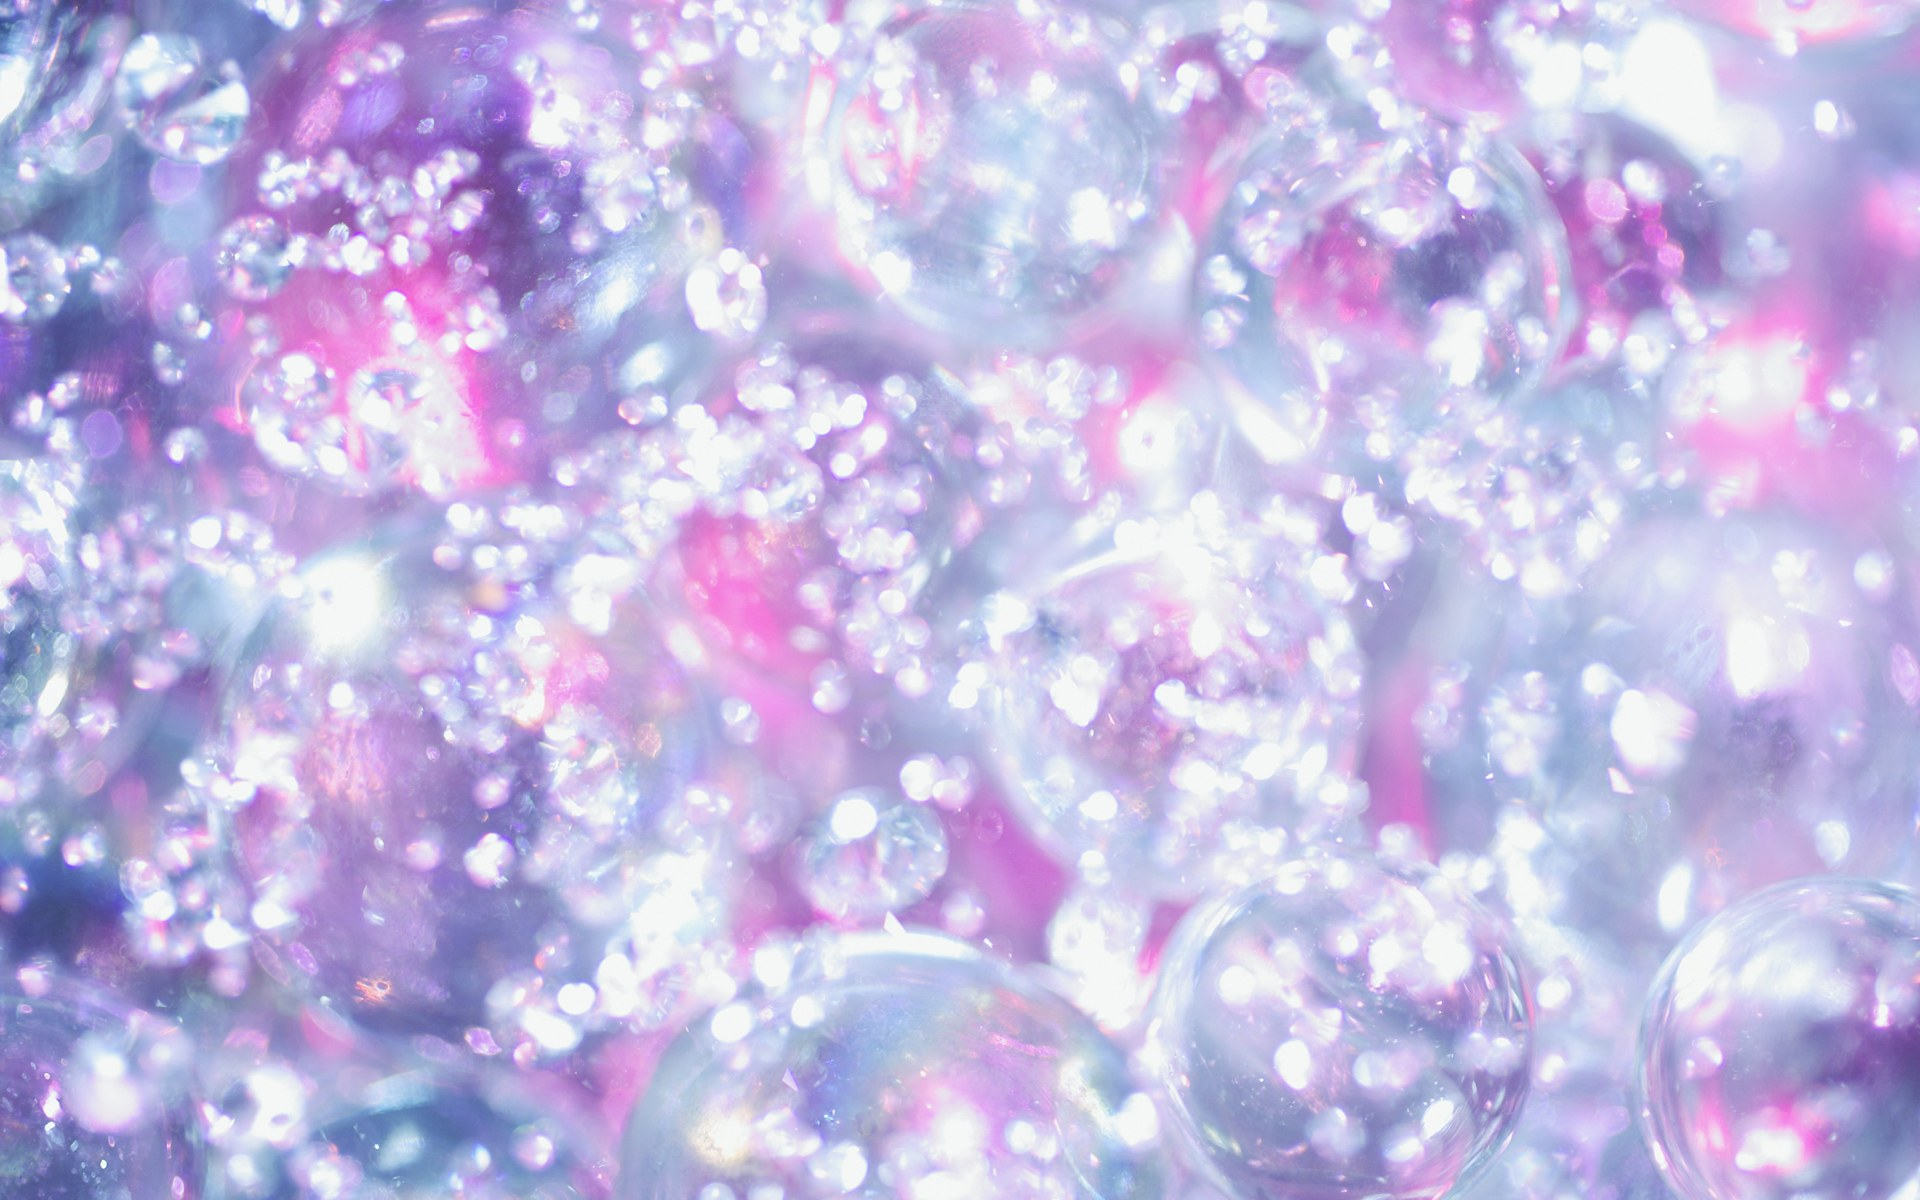 Marvellous Wallpaper Backgrounds Desktop Sparkly Sparkling Diamond Photography Crystal Wallpapers Wallwuzz Hd